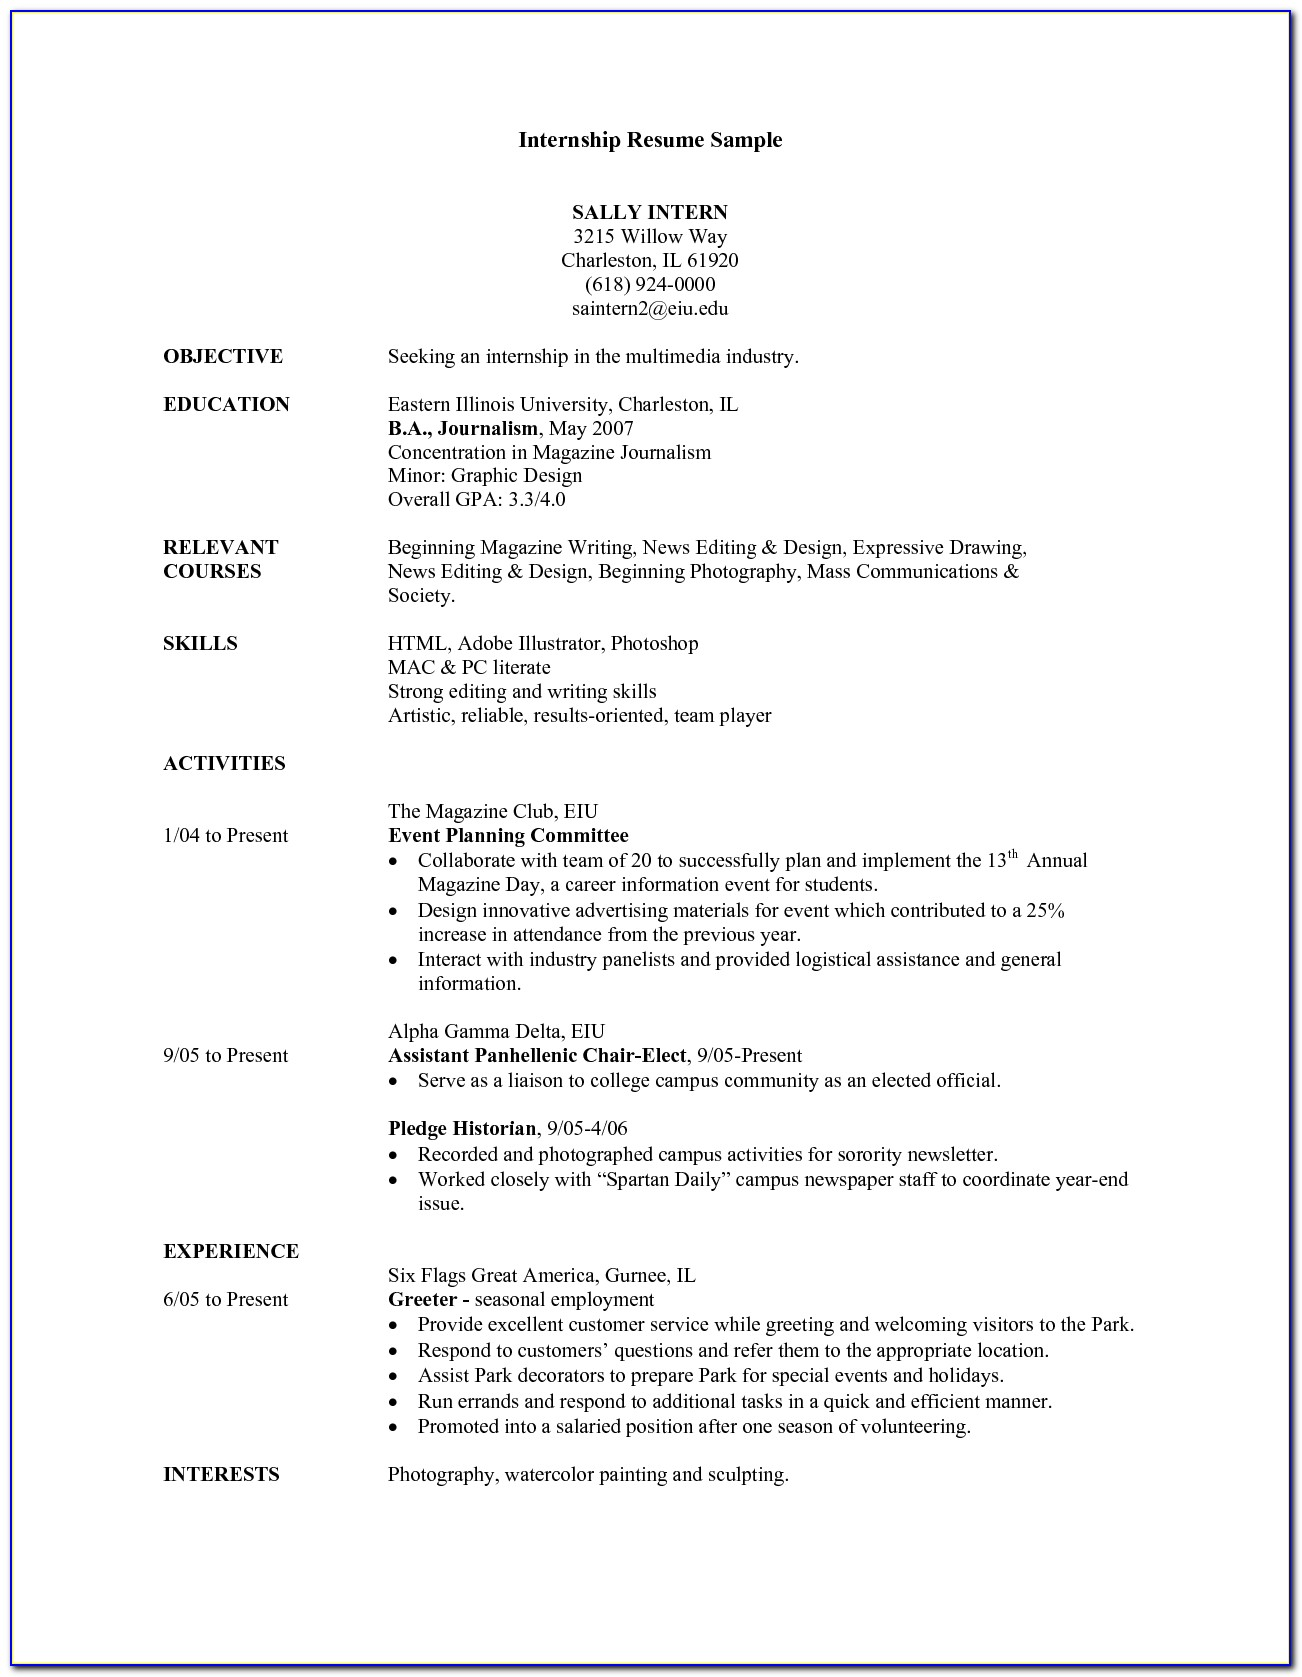 Internship Resume Template For College Students